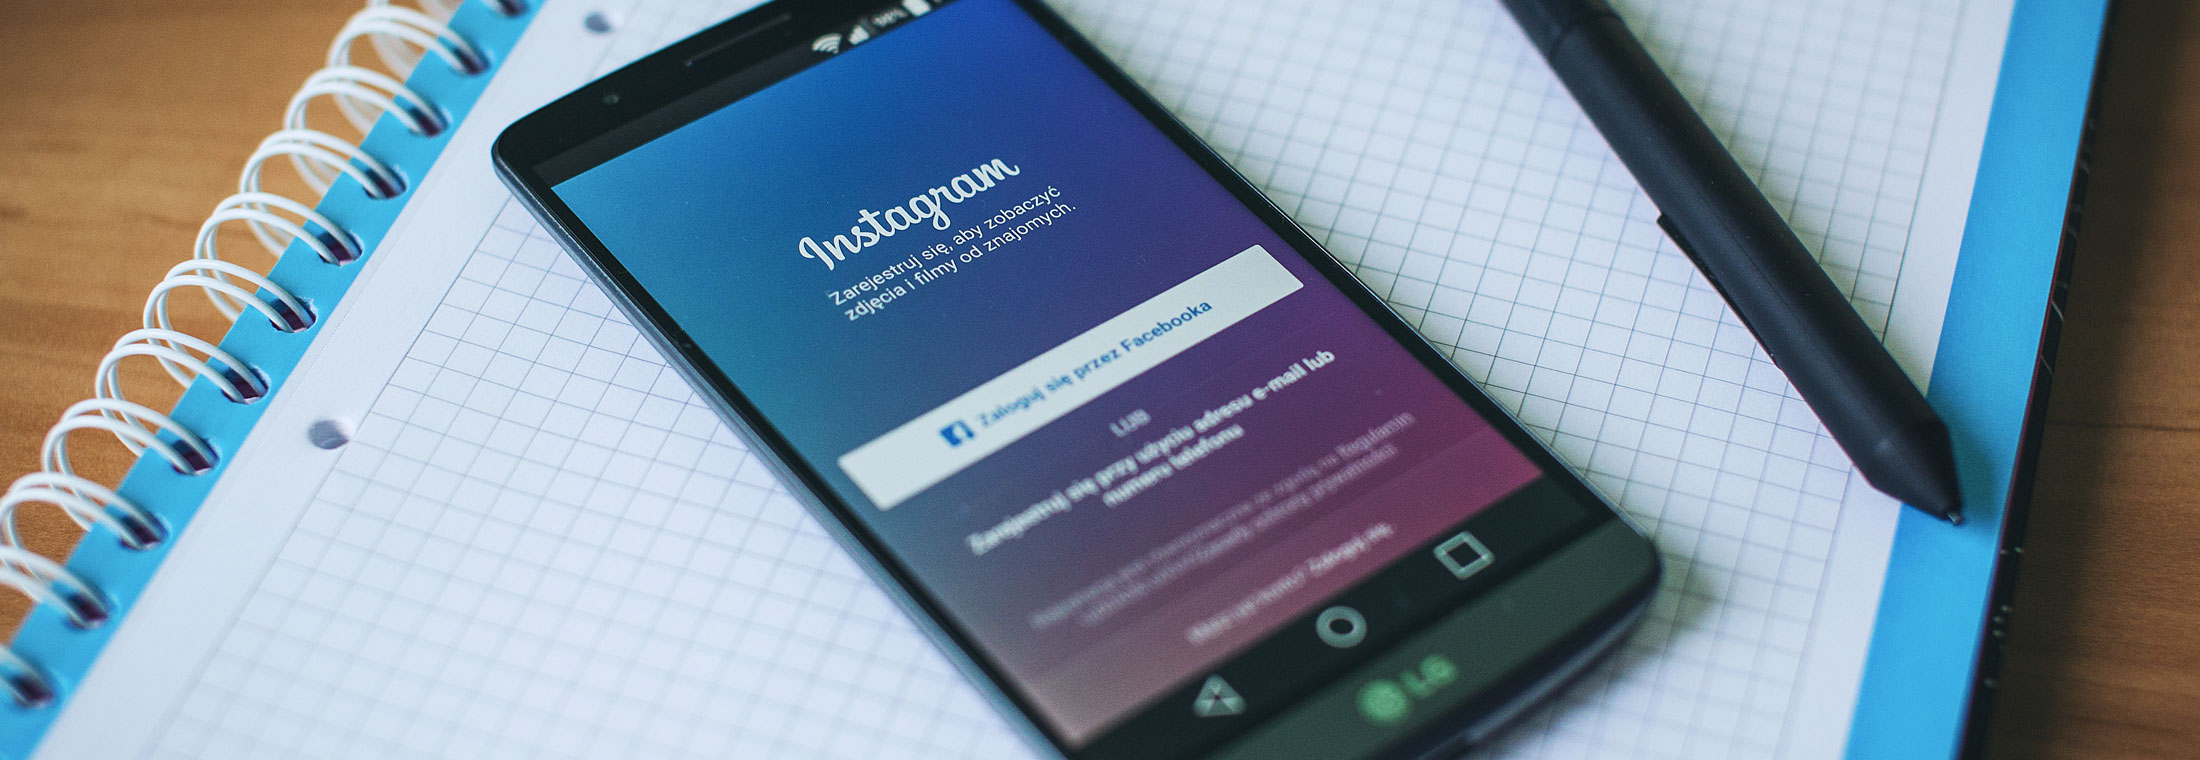 49 Incredible Instagram Statistics you Need to Know | Brandwatch